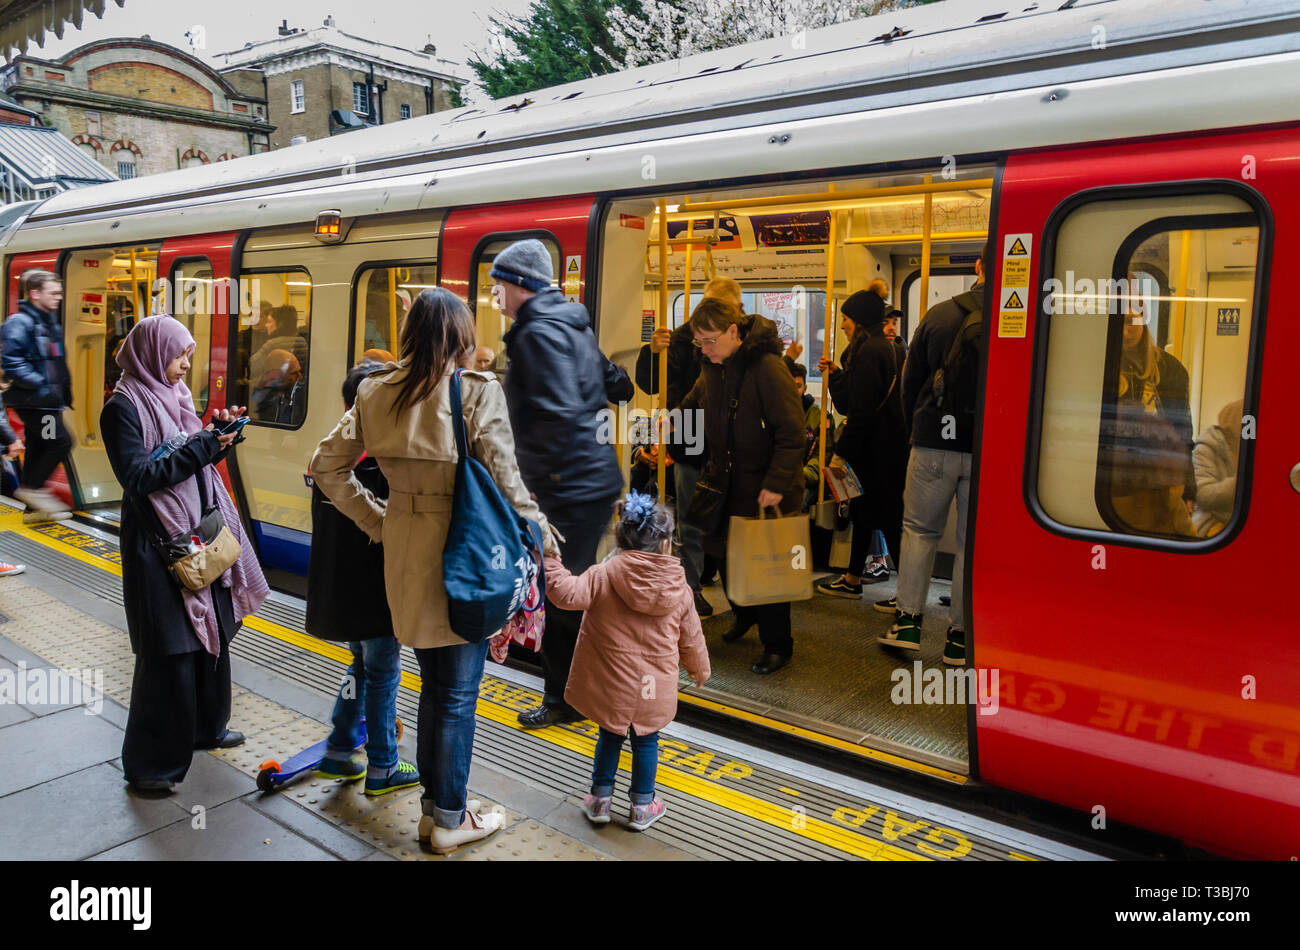 passengers-board-and-leave-a-train-at-westbourne-park-london-underground-station-T3BJ70.jpg